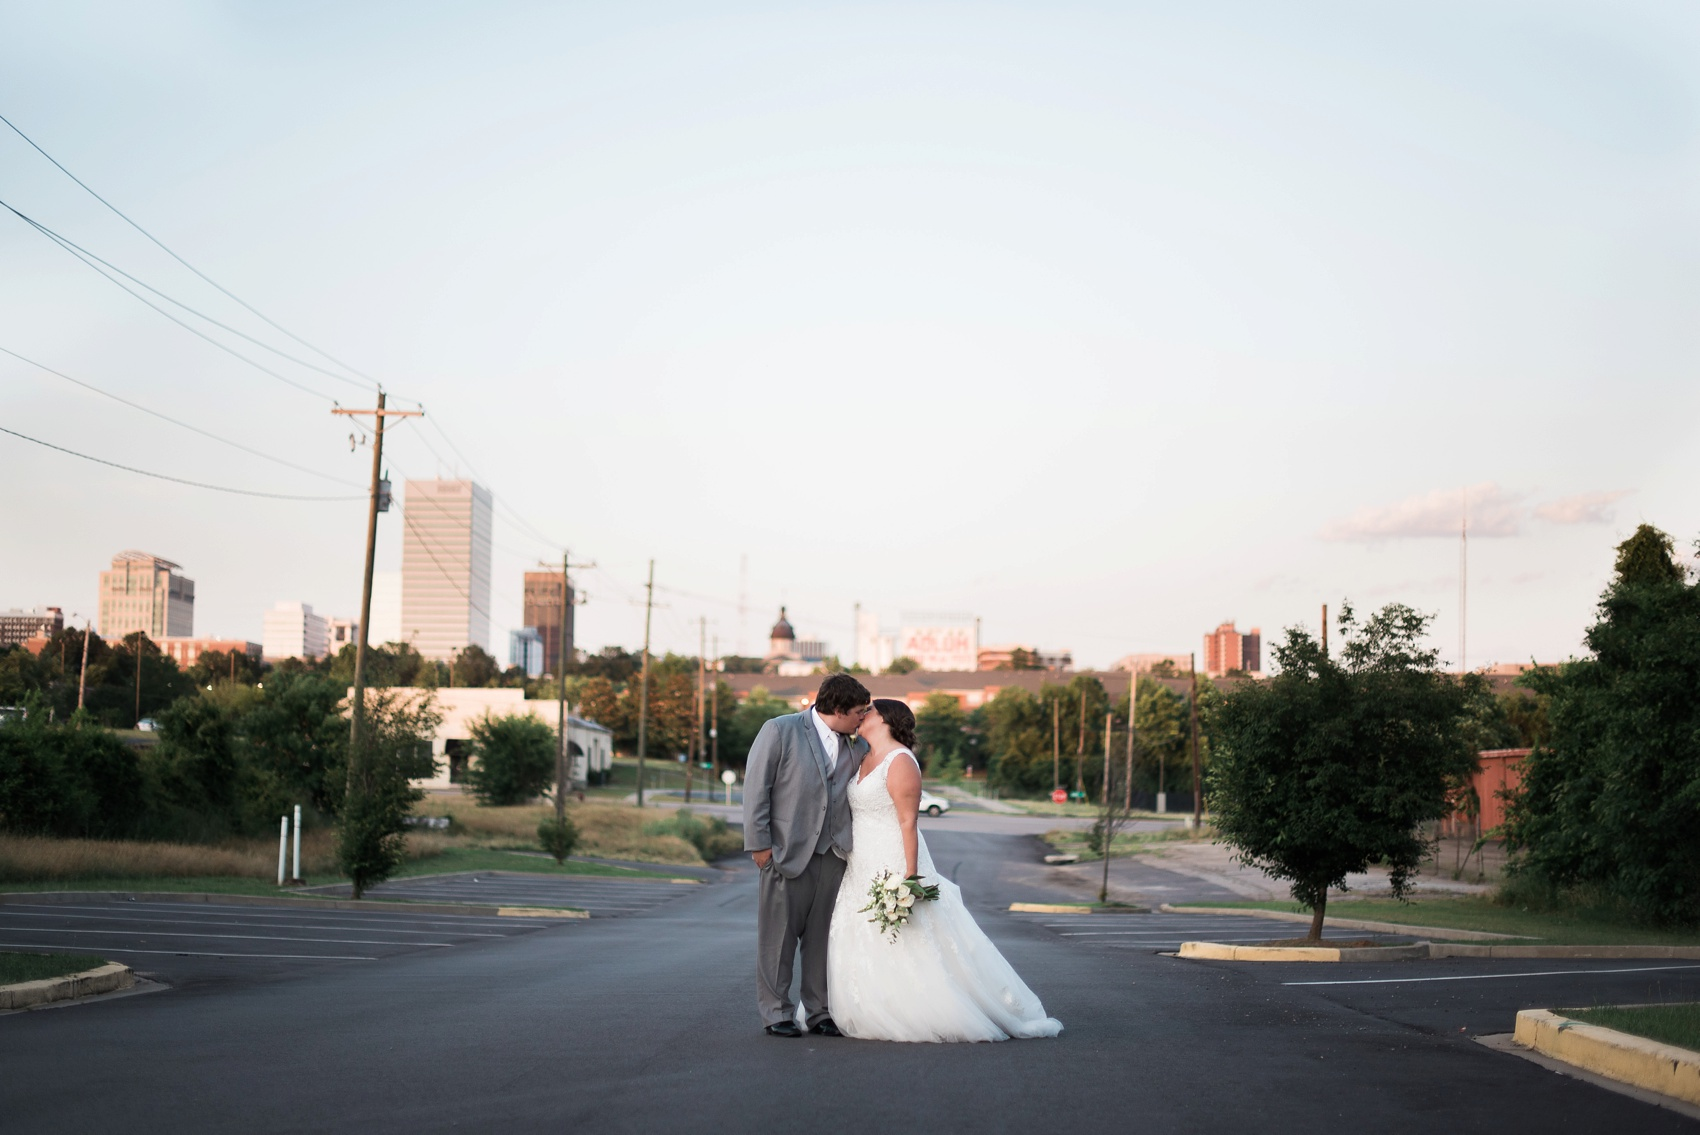 columbia_wedding_photographer_0331.jpg